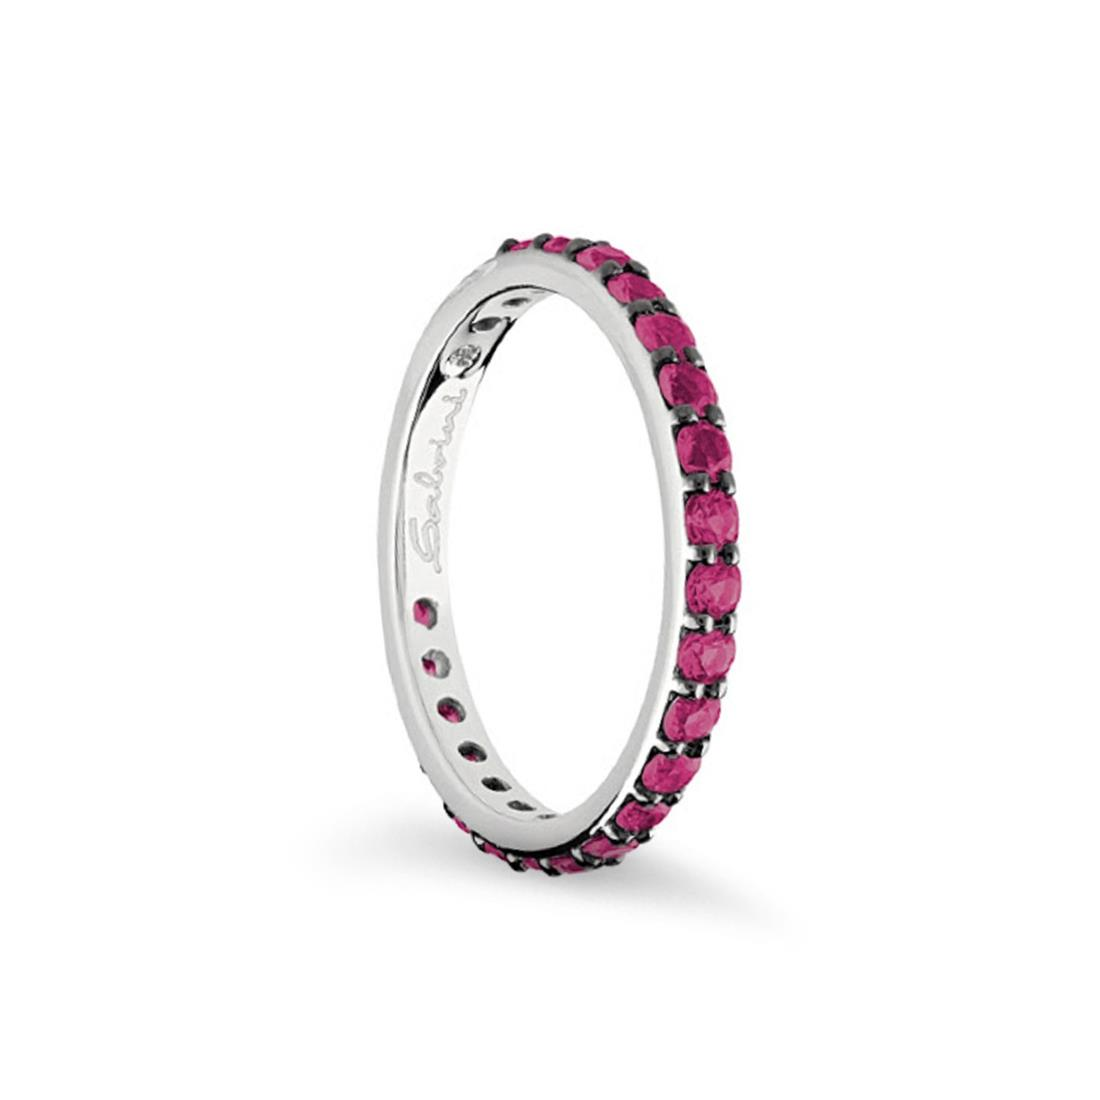 Ring with rubies - SALVINI